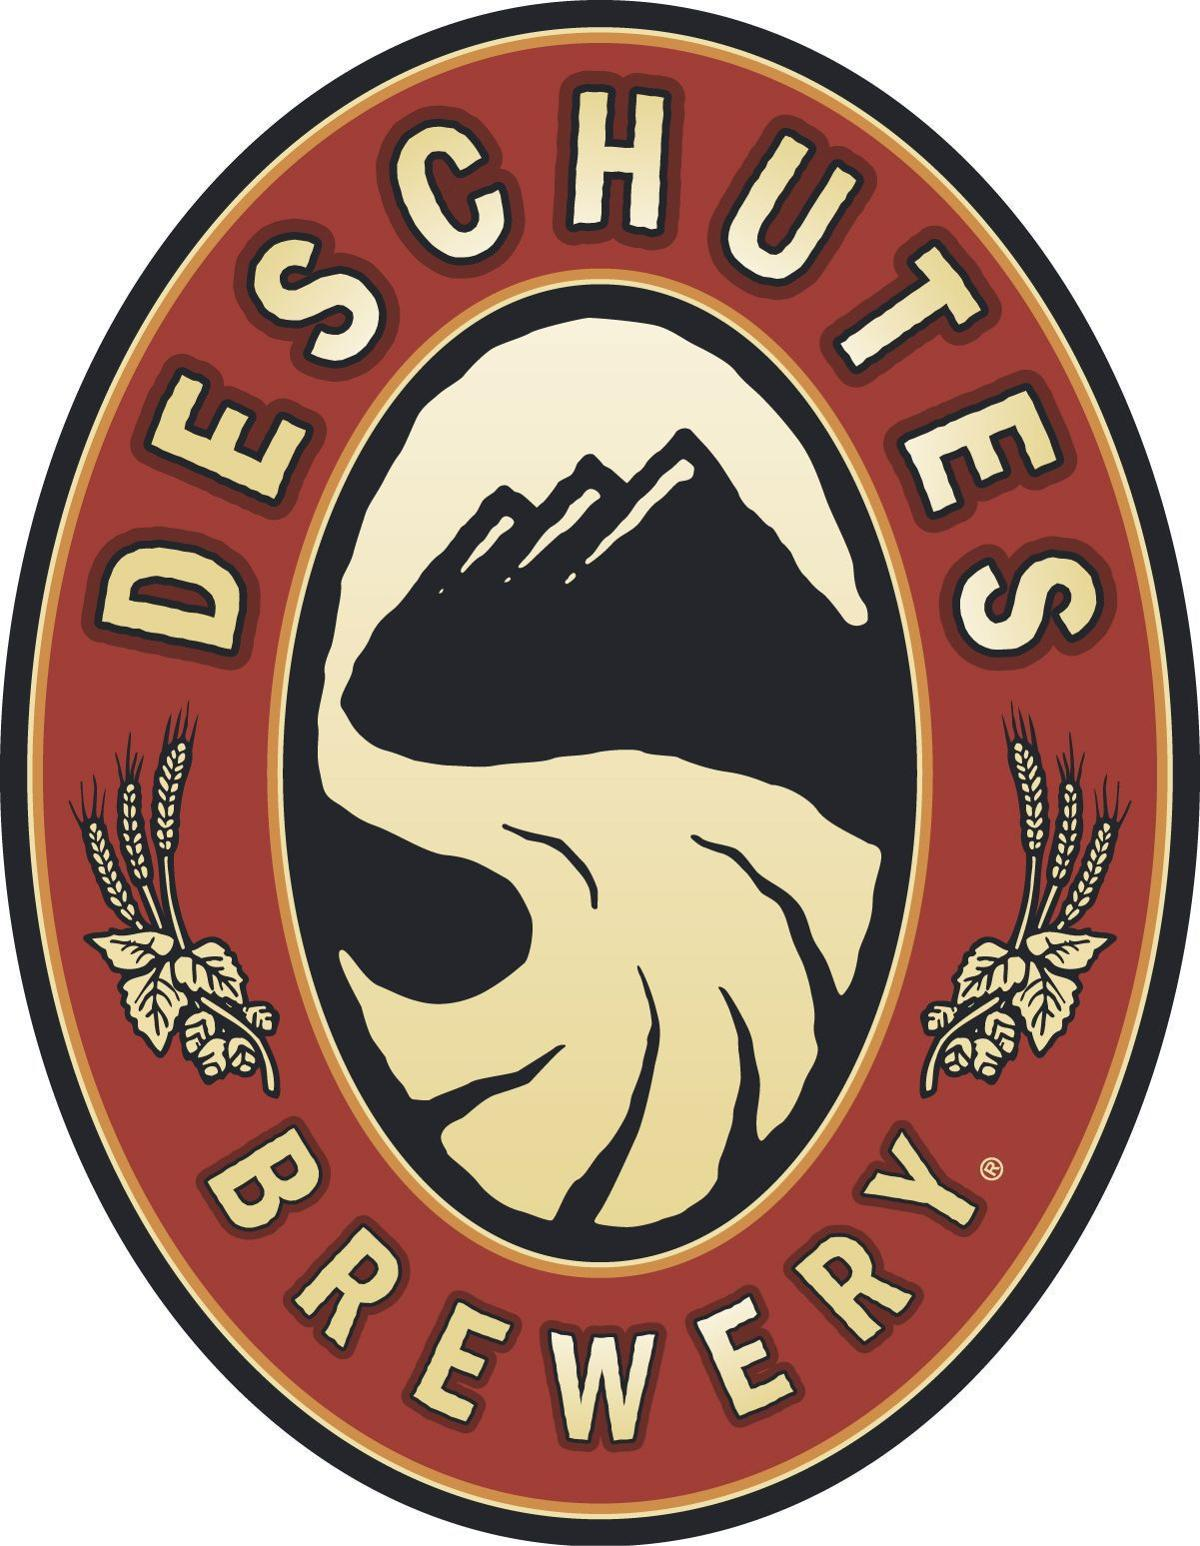 Craft beer giant Deschutes considering Charleston for East Coast expansion